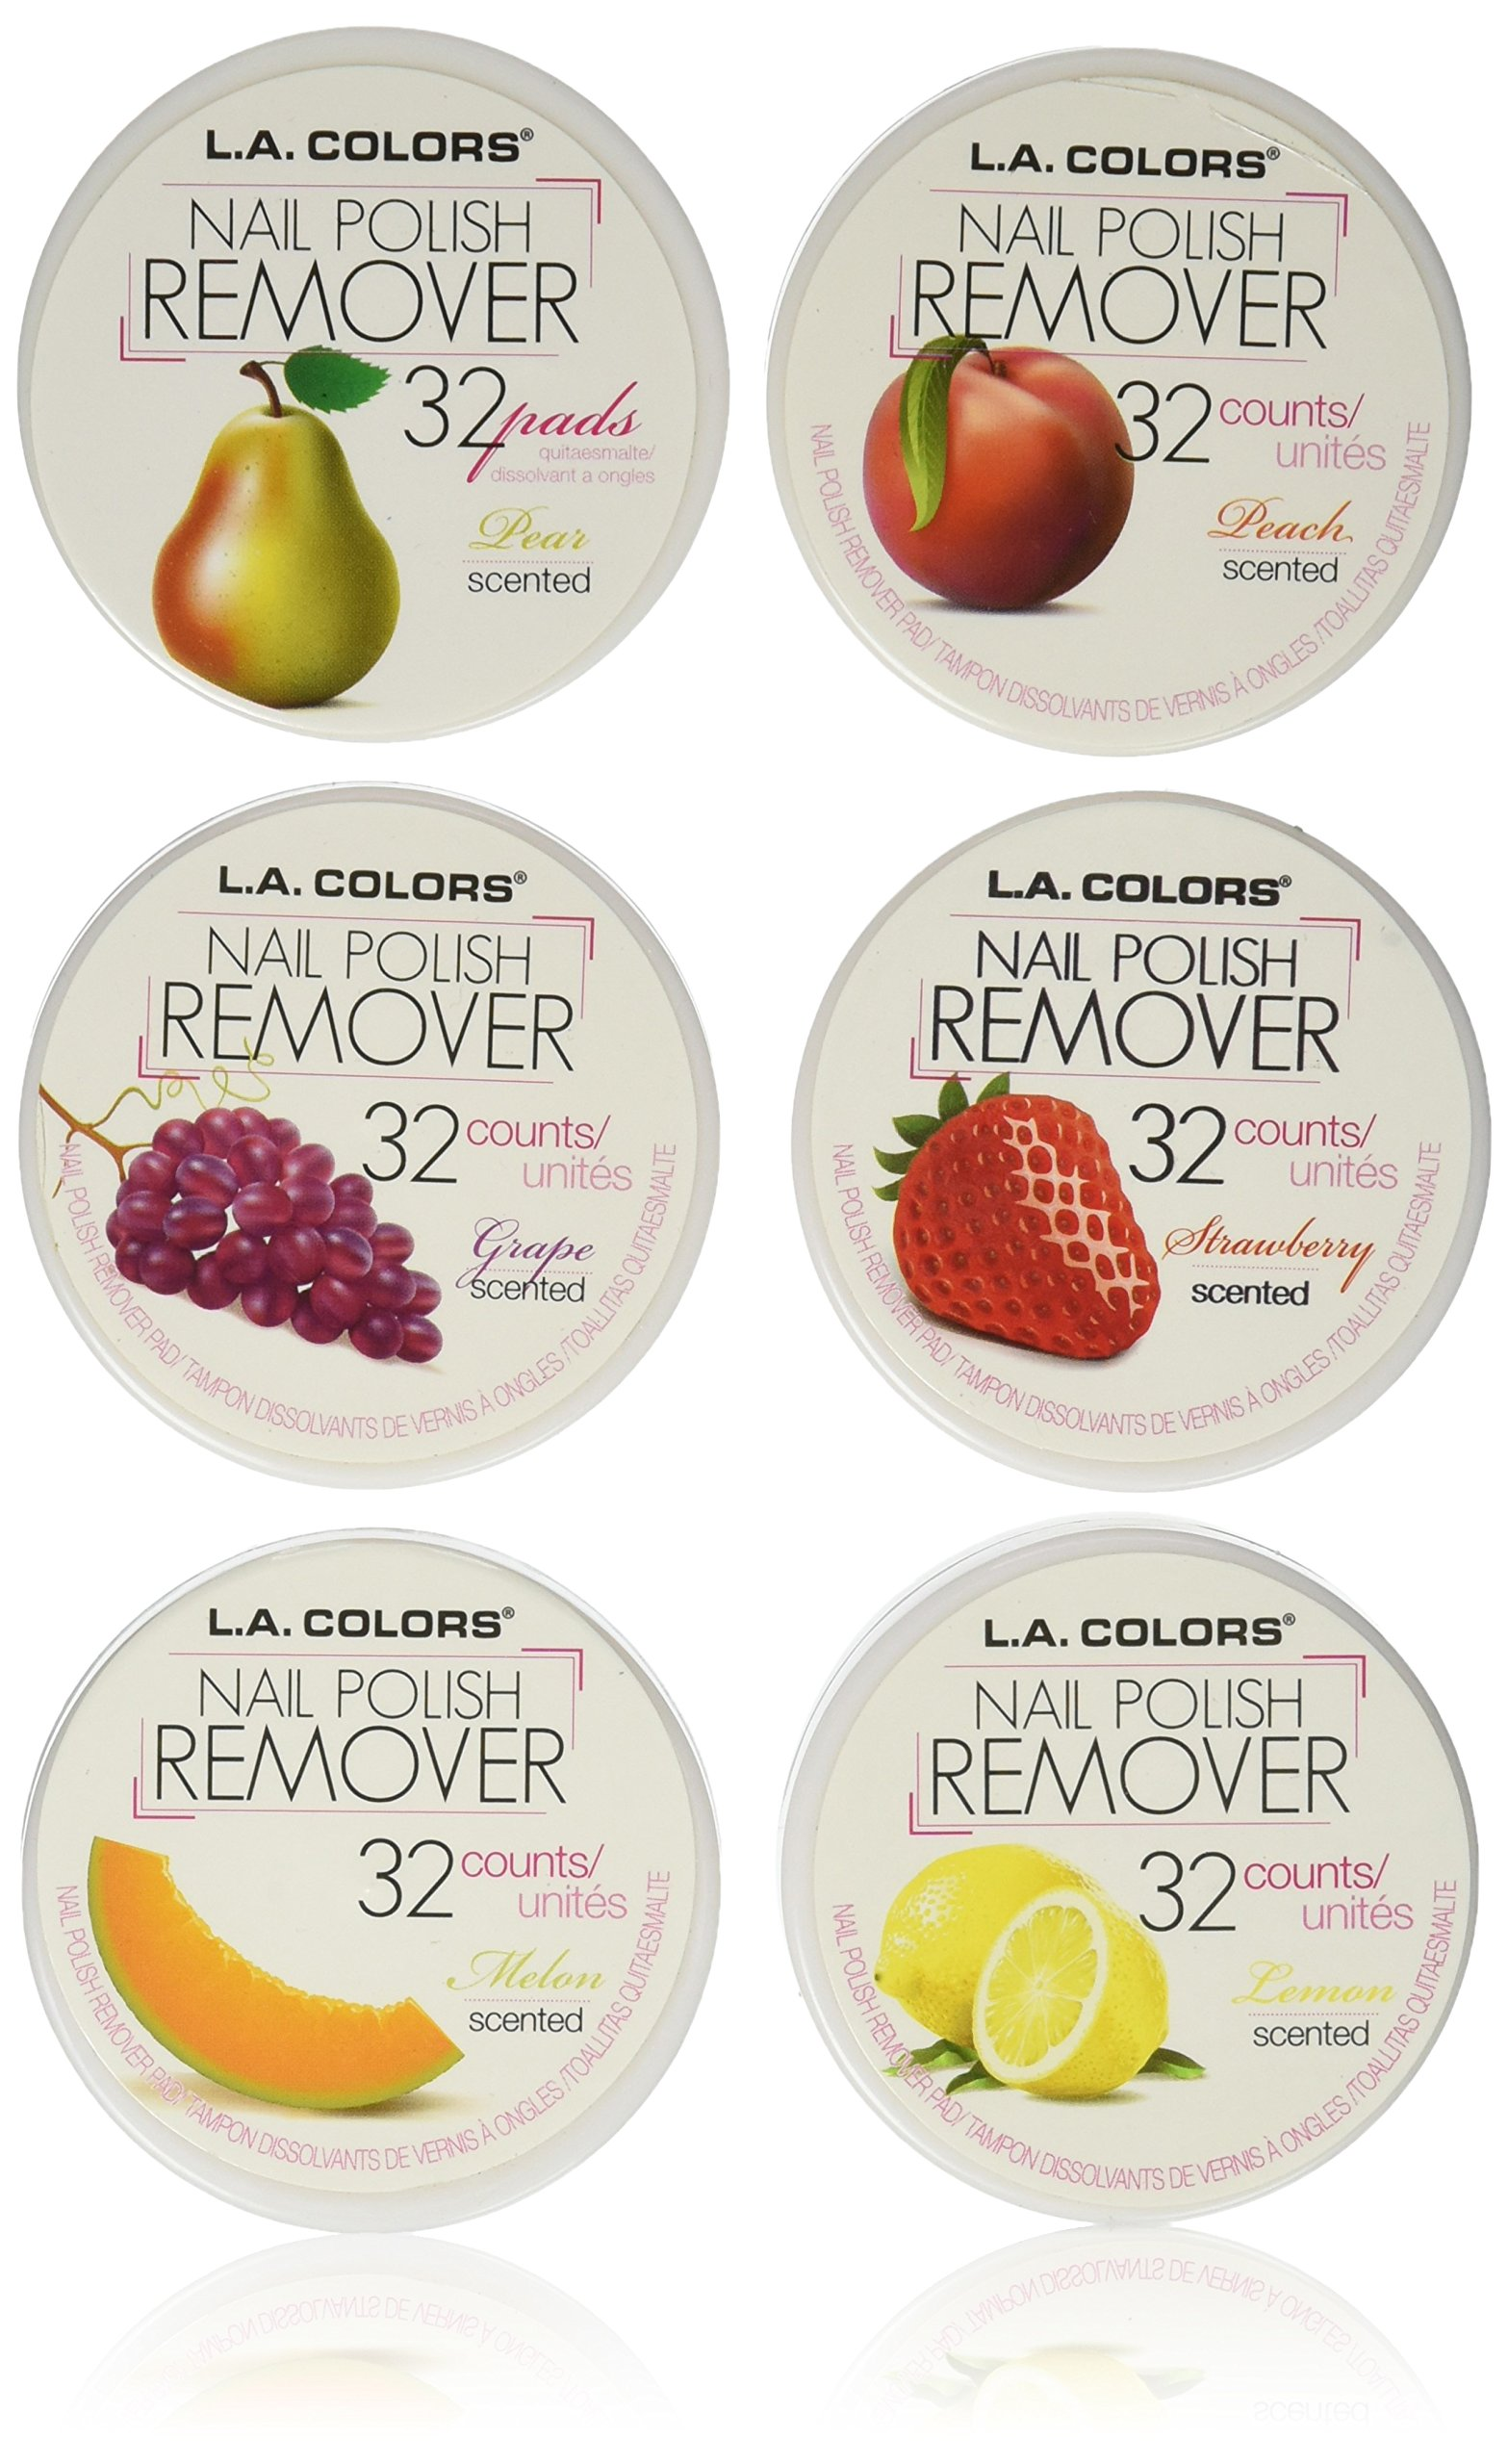 L.A. Colors Nail Polish Remover Pads 6 Fruit Scents (32 Pads of each) by L.A. COLORS